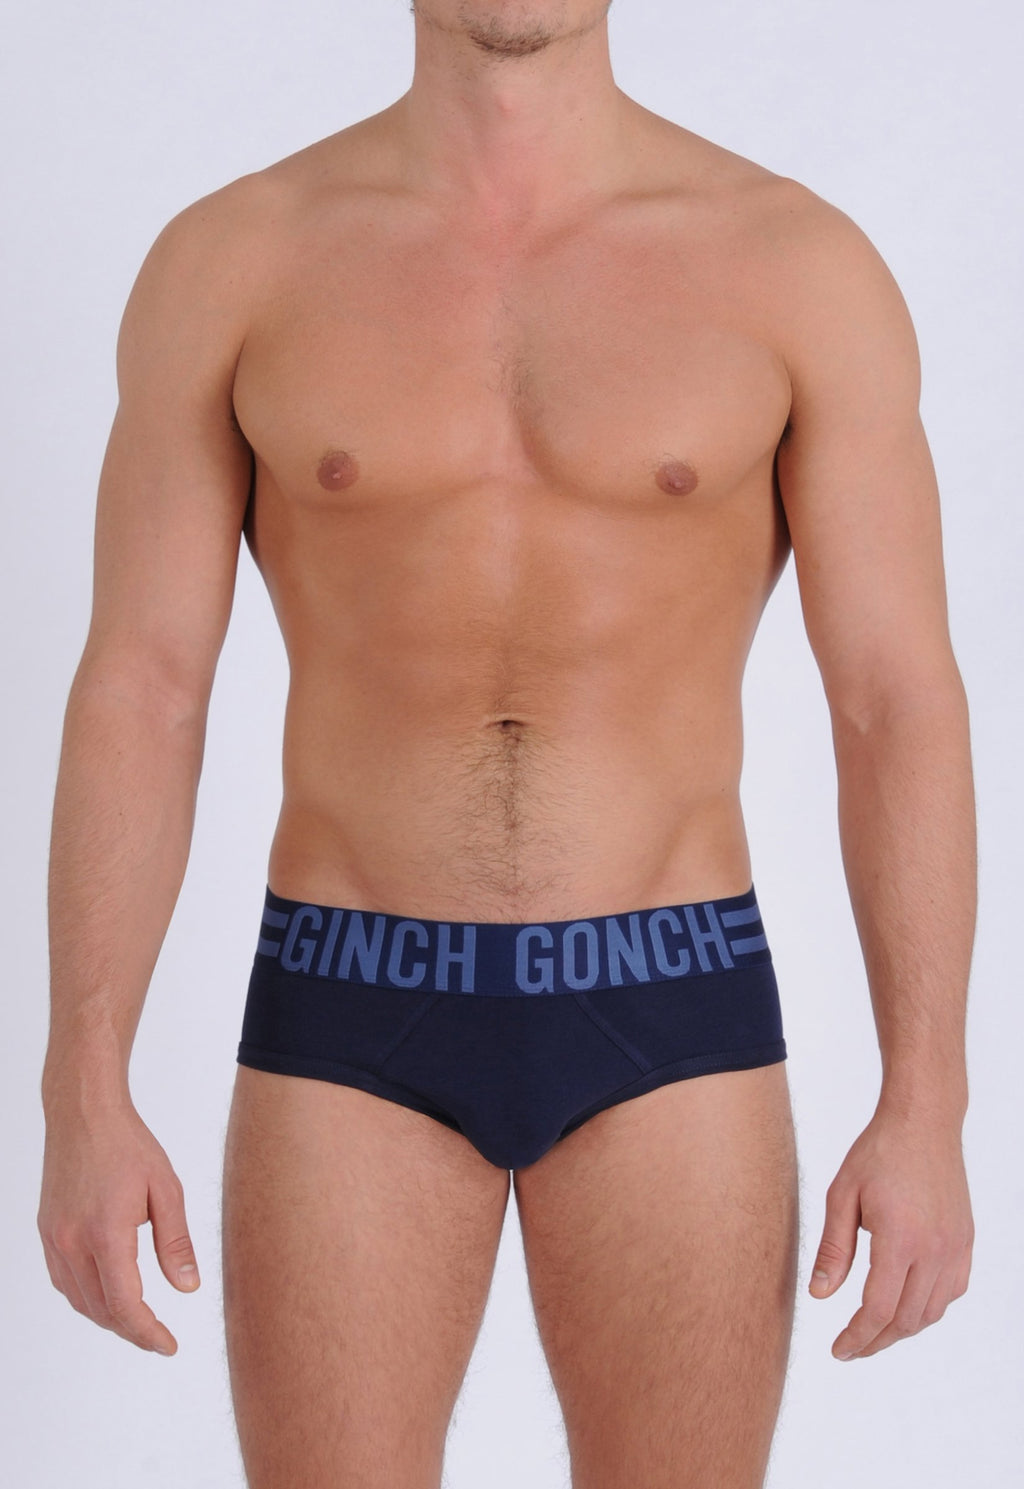 Ginch Gonch Men's Signature Series Underwear - Low Rise Brief navy printed thick waistband front